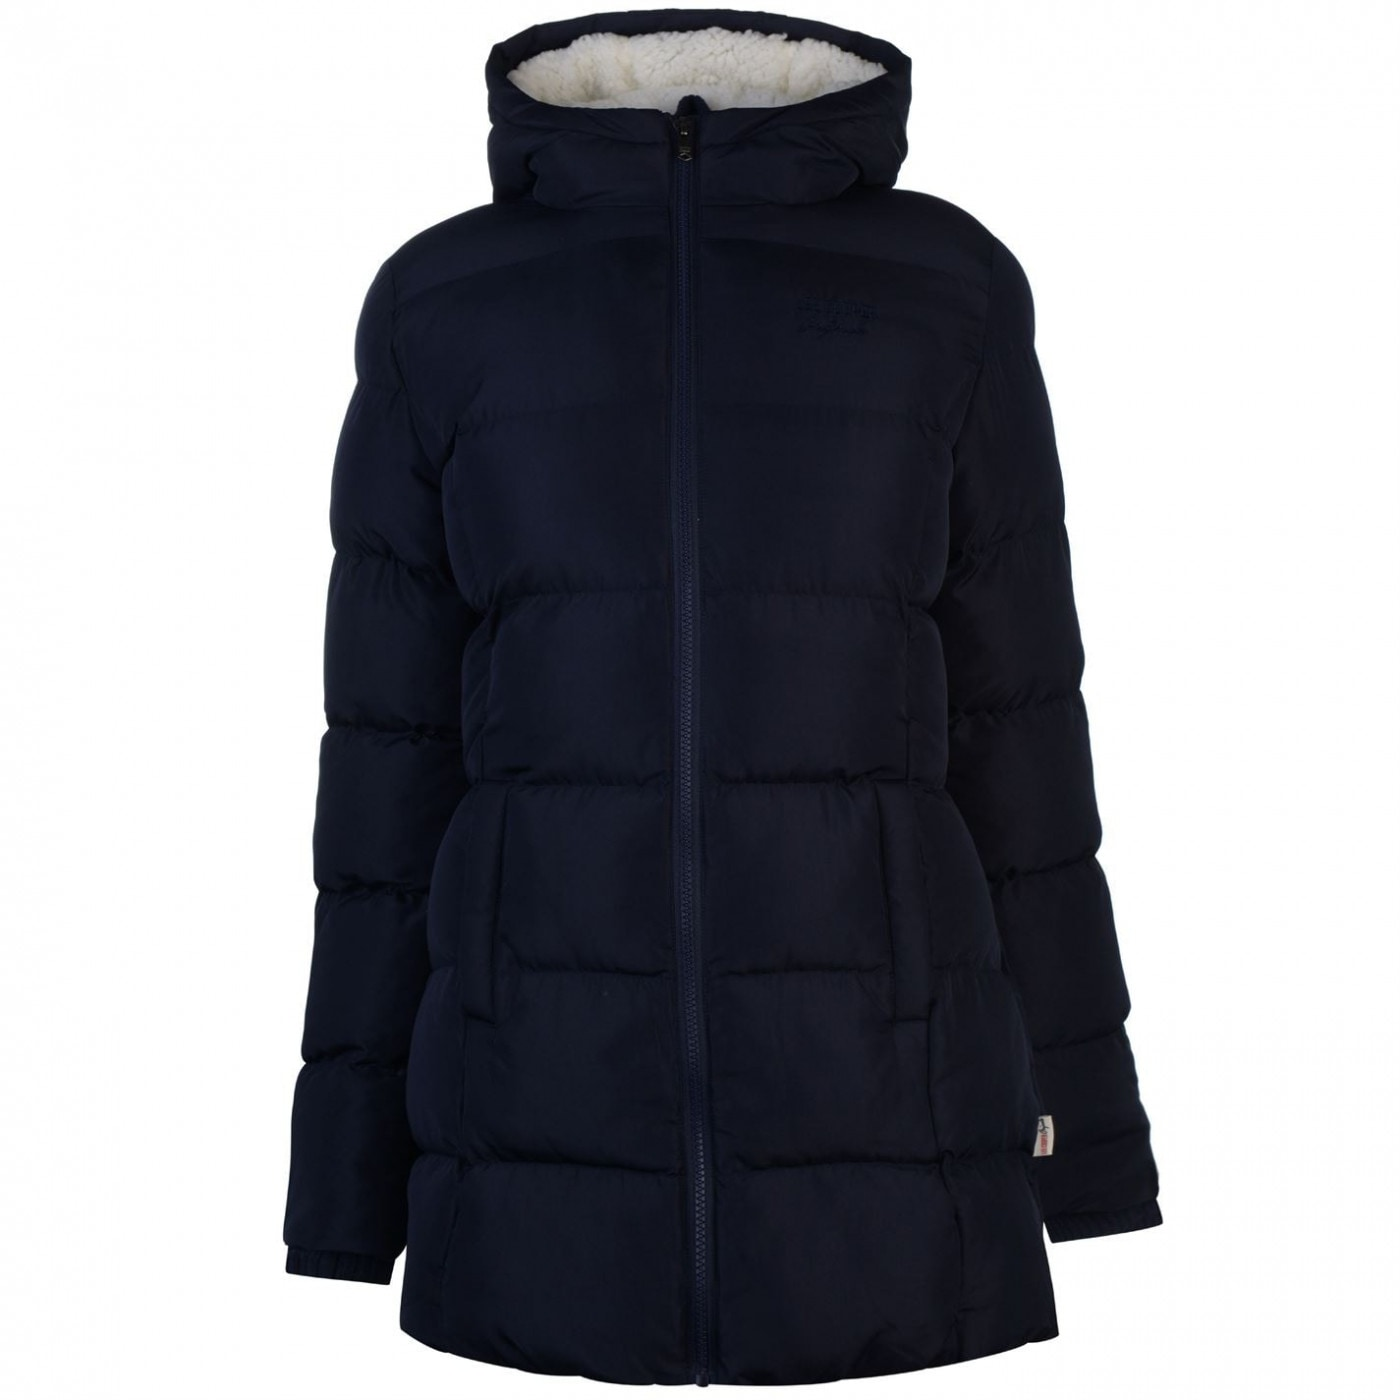 Lee Cooper Long Padded Jacket Ladies